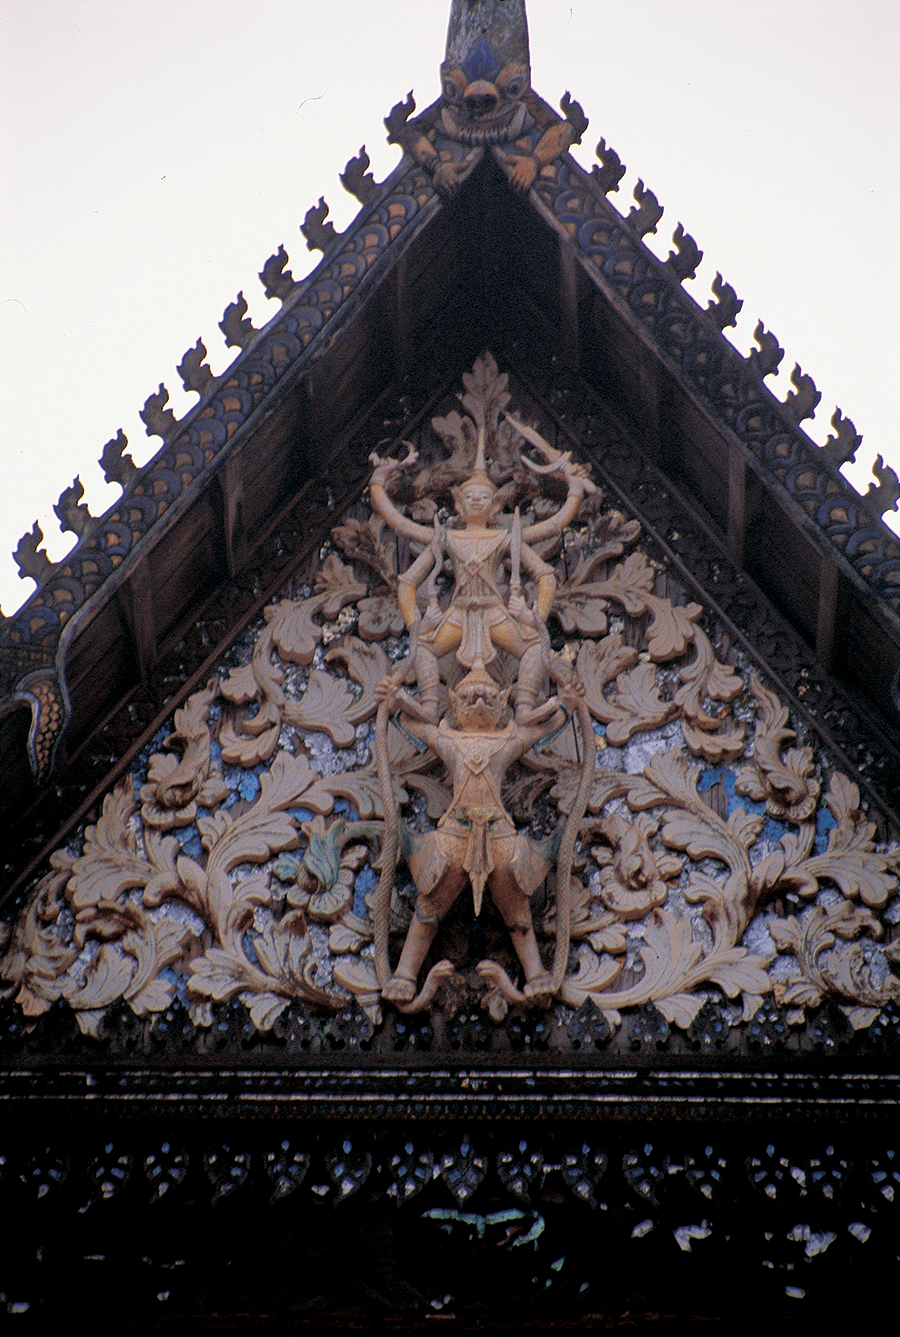 Vishnu the Preserver, the best loved of all the Hindu gods, mounts Garuda. This is a common motif on the gables of Thai and Cambodian Buddhist monasteries. Photo: Siem Reap, Cambodia